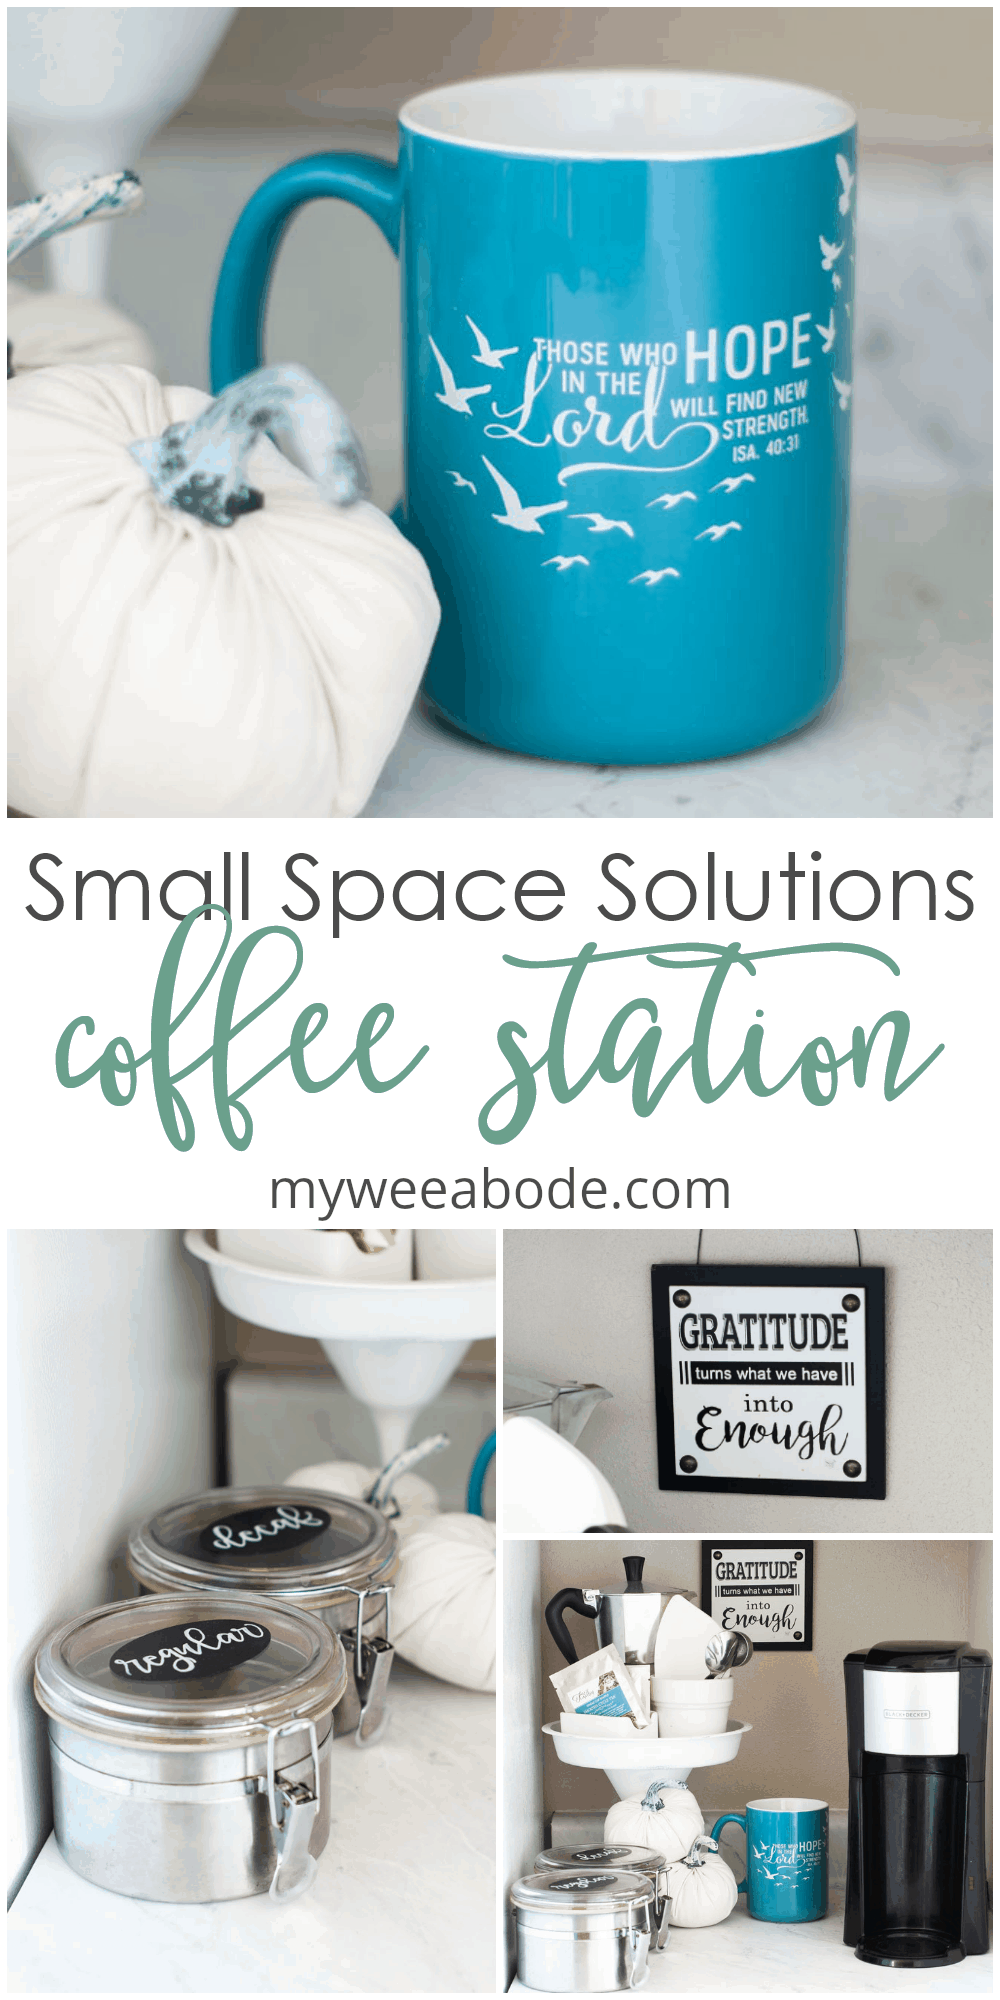 diy coffee station ideas for small spaces coffee station with coffee maker mug stainless steel canisters pumpkins cake plate with coffee accessories